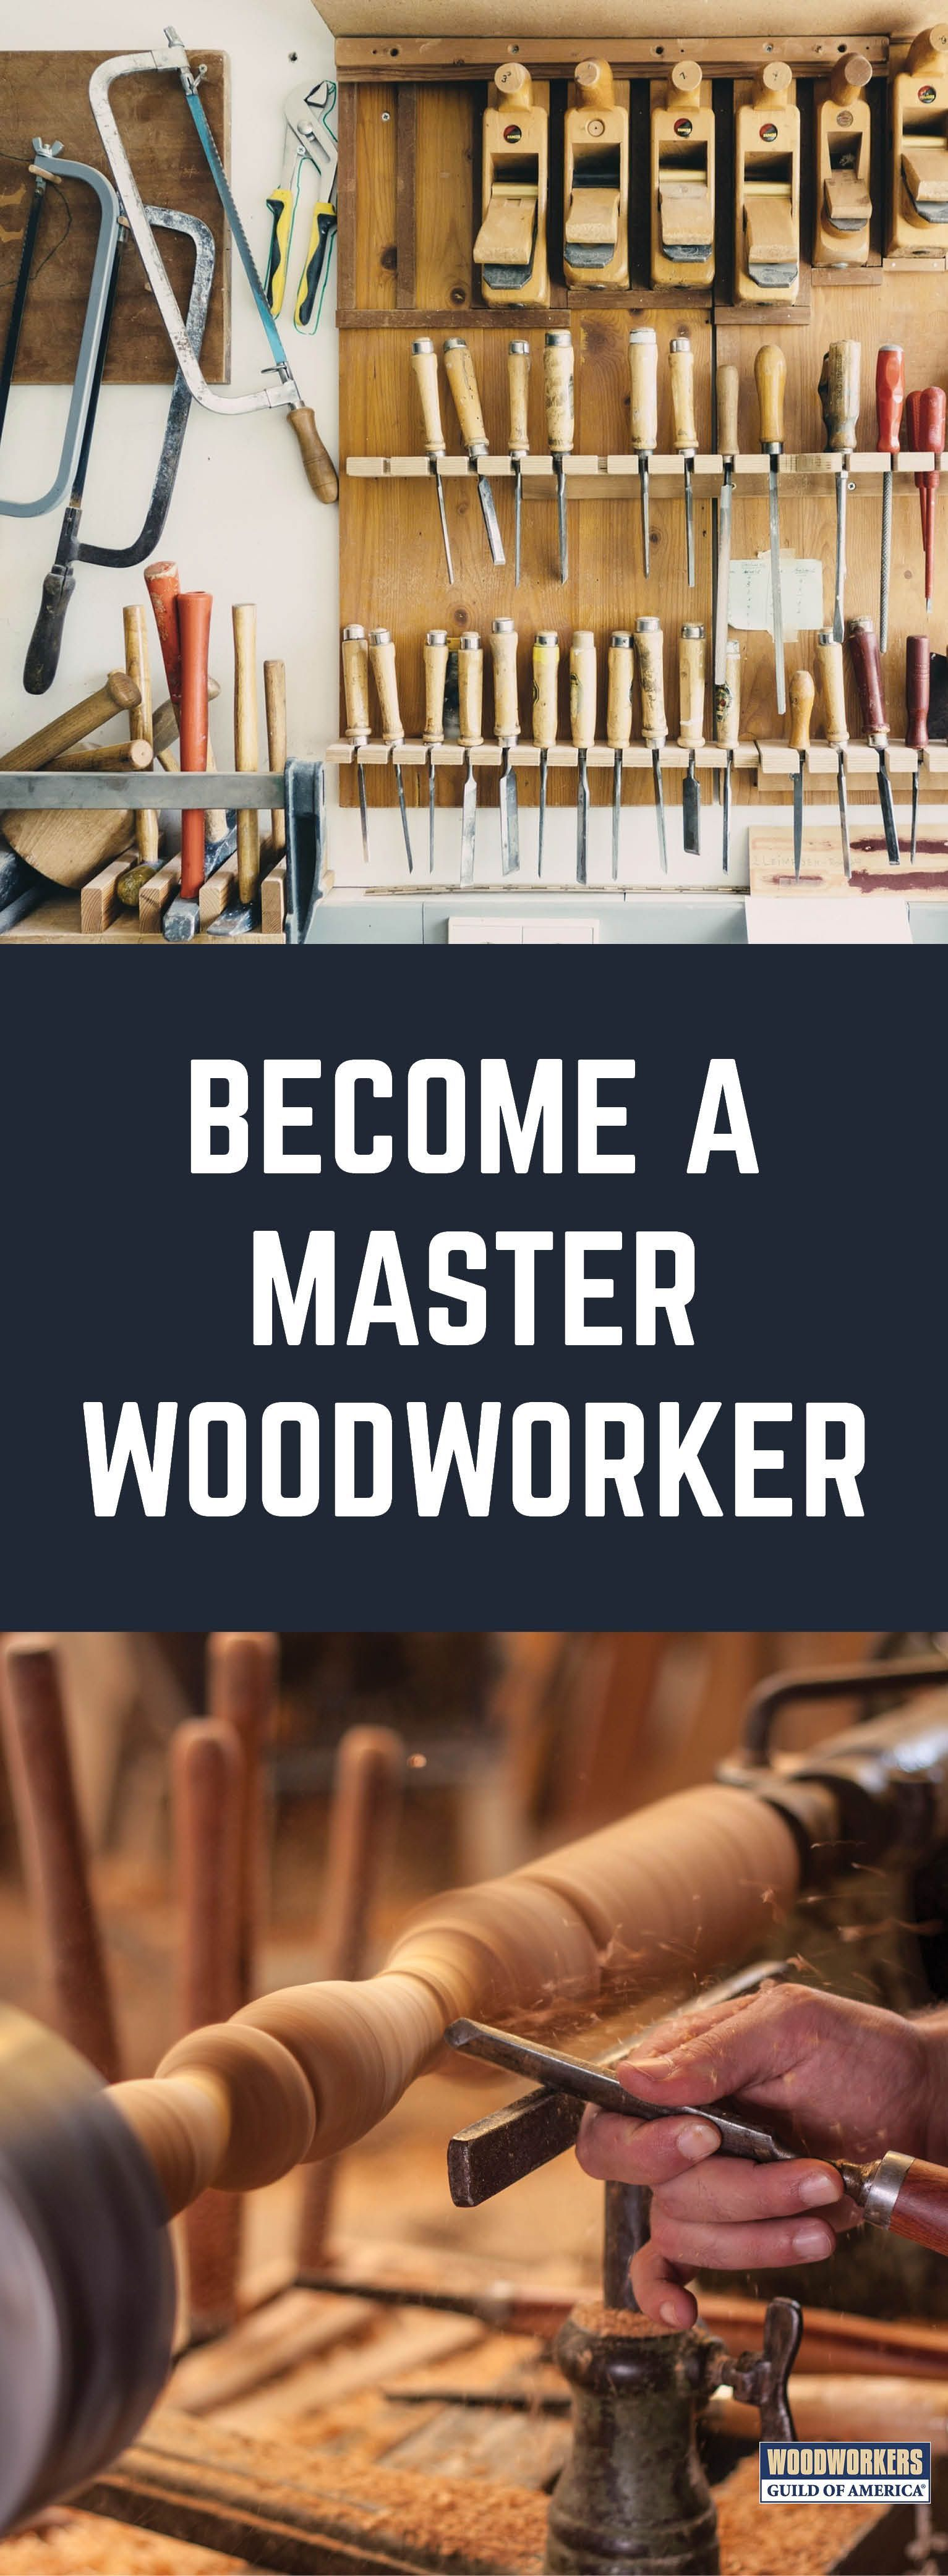 Get The Latest Instructional Woodworking Videos Tips And Techniques